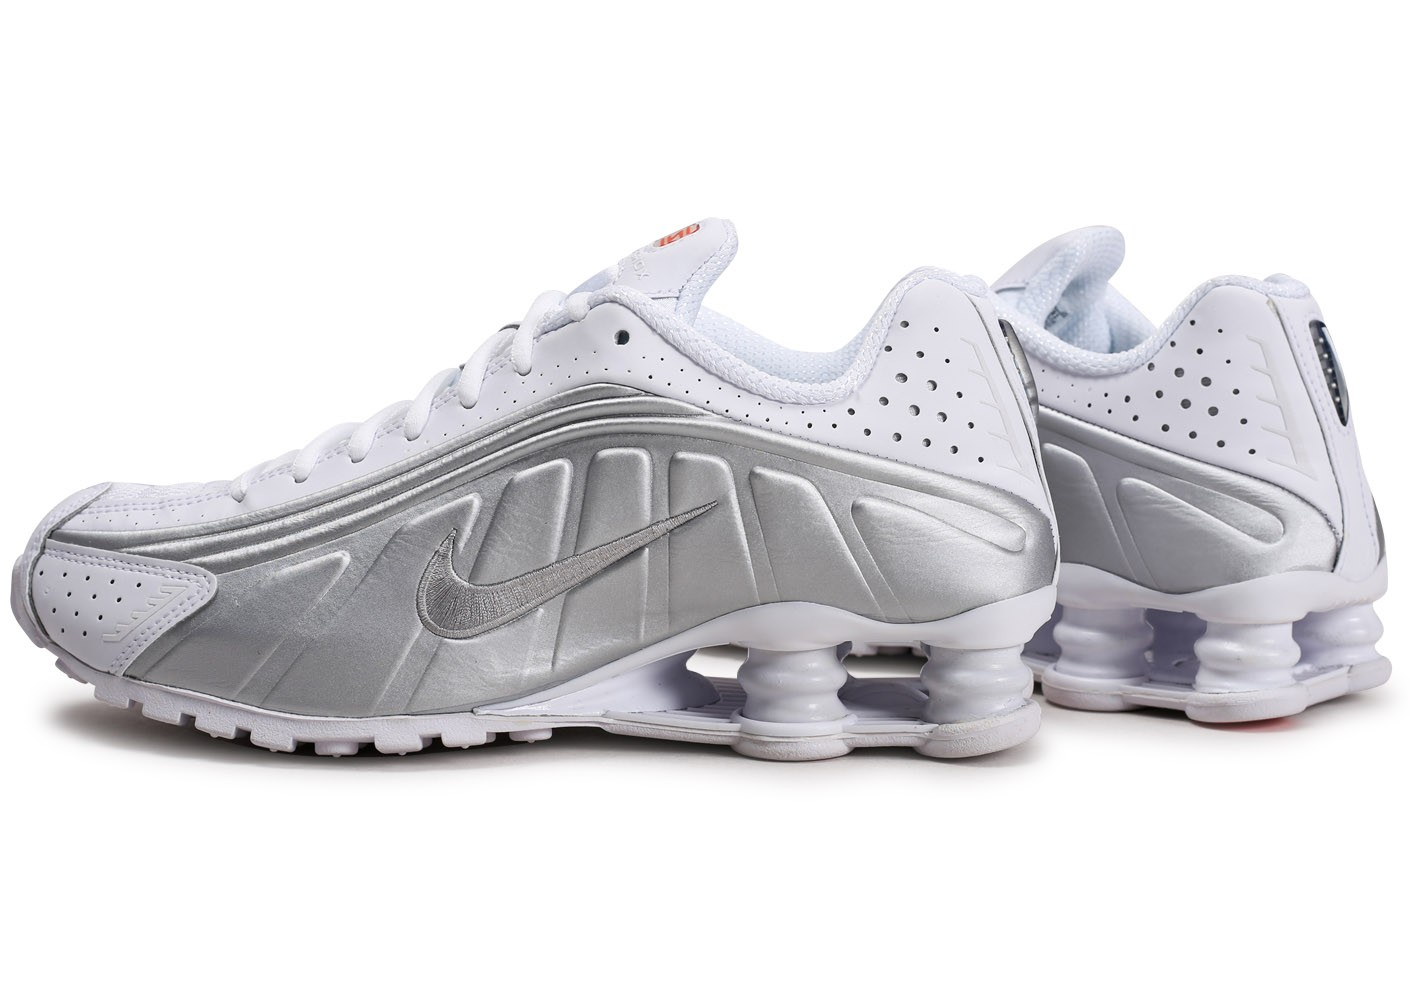 Nike Shox R4 blanc argent - Chaussures Baskets homme - Gov